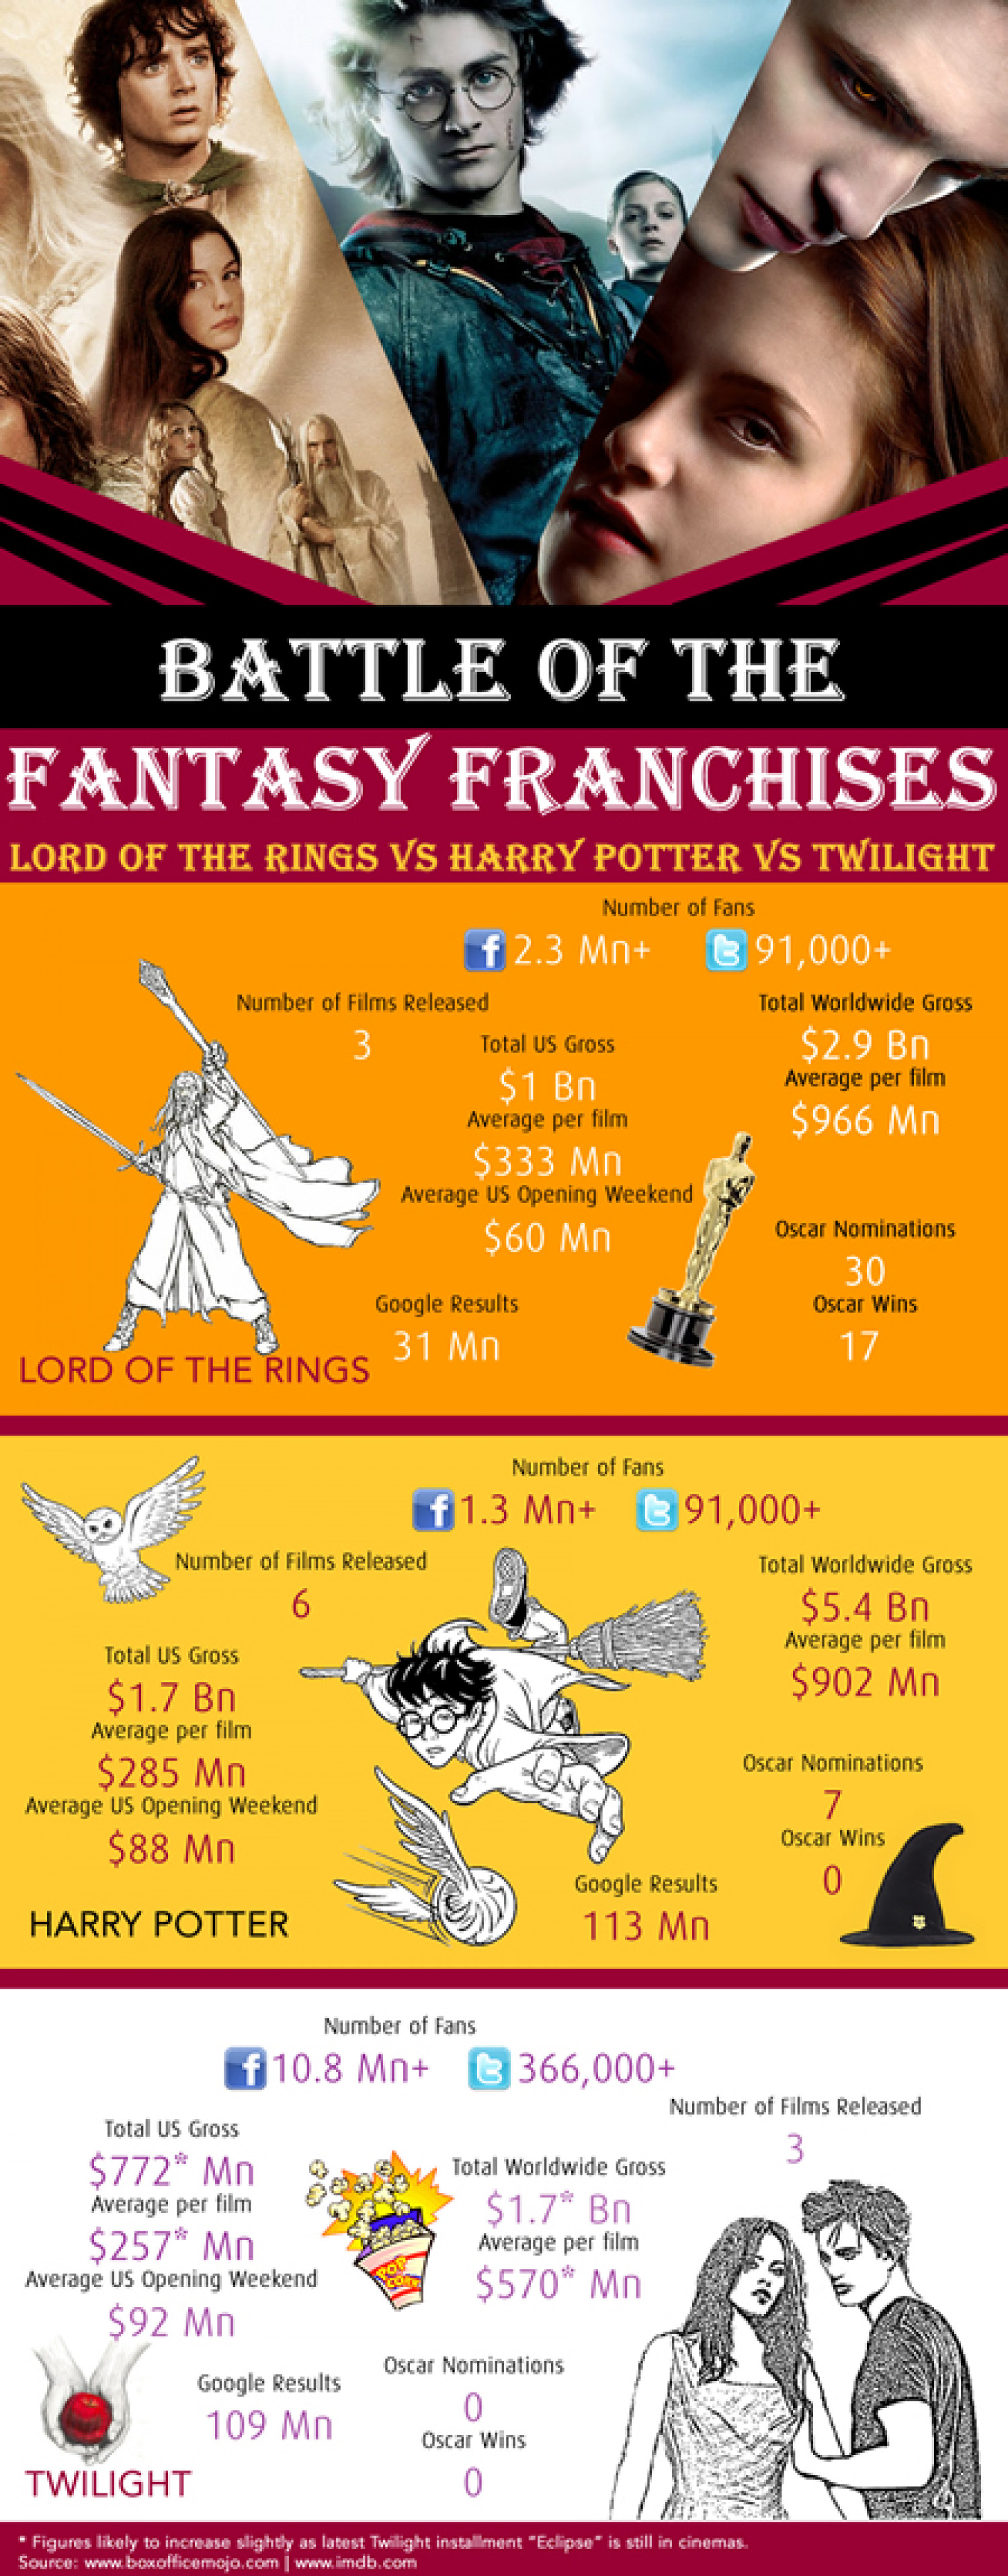 Battle of the Fantasy Franchises Infographic